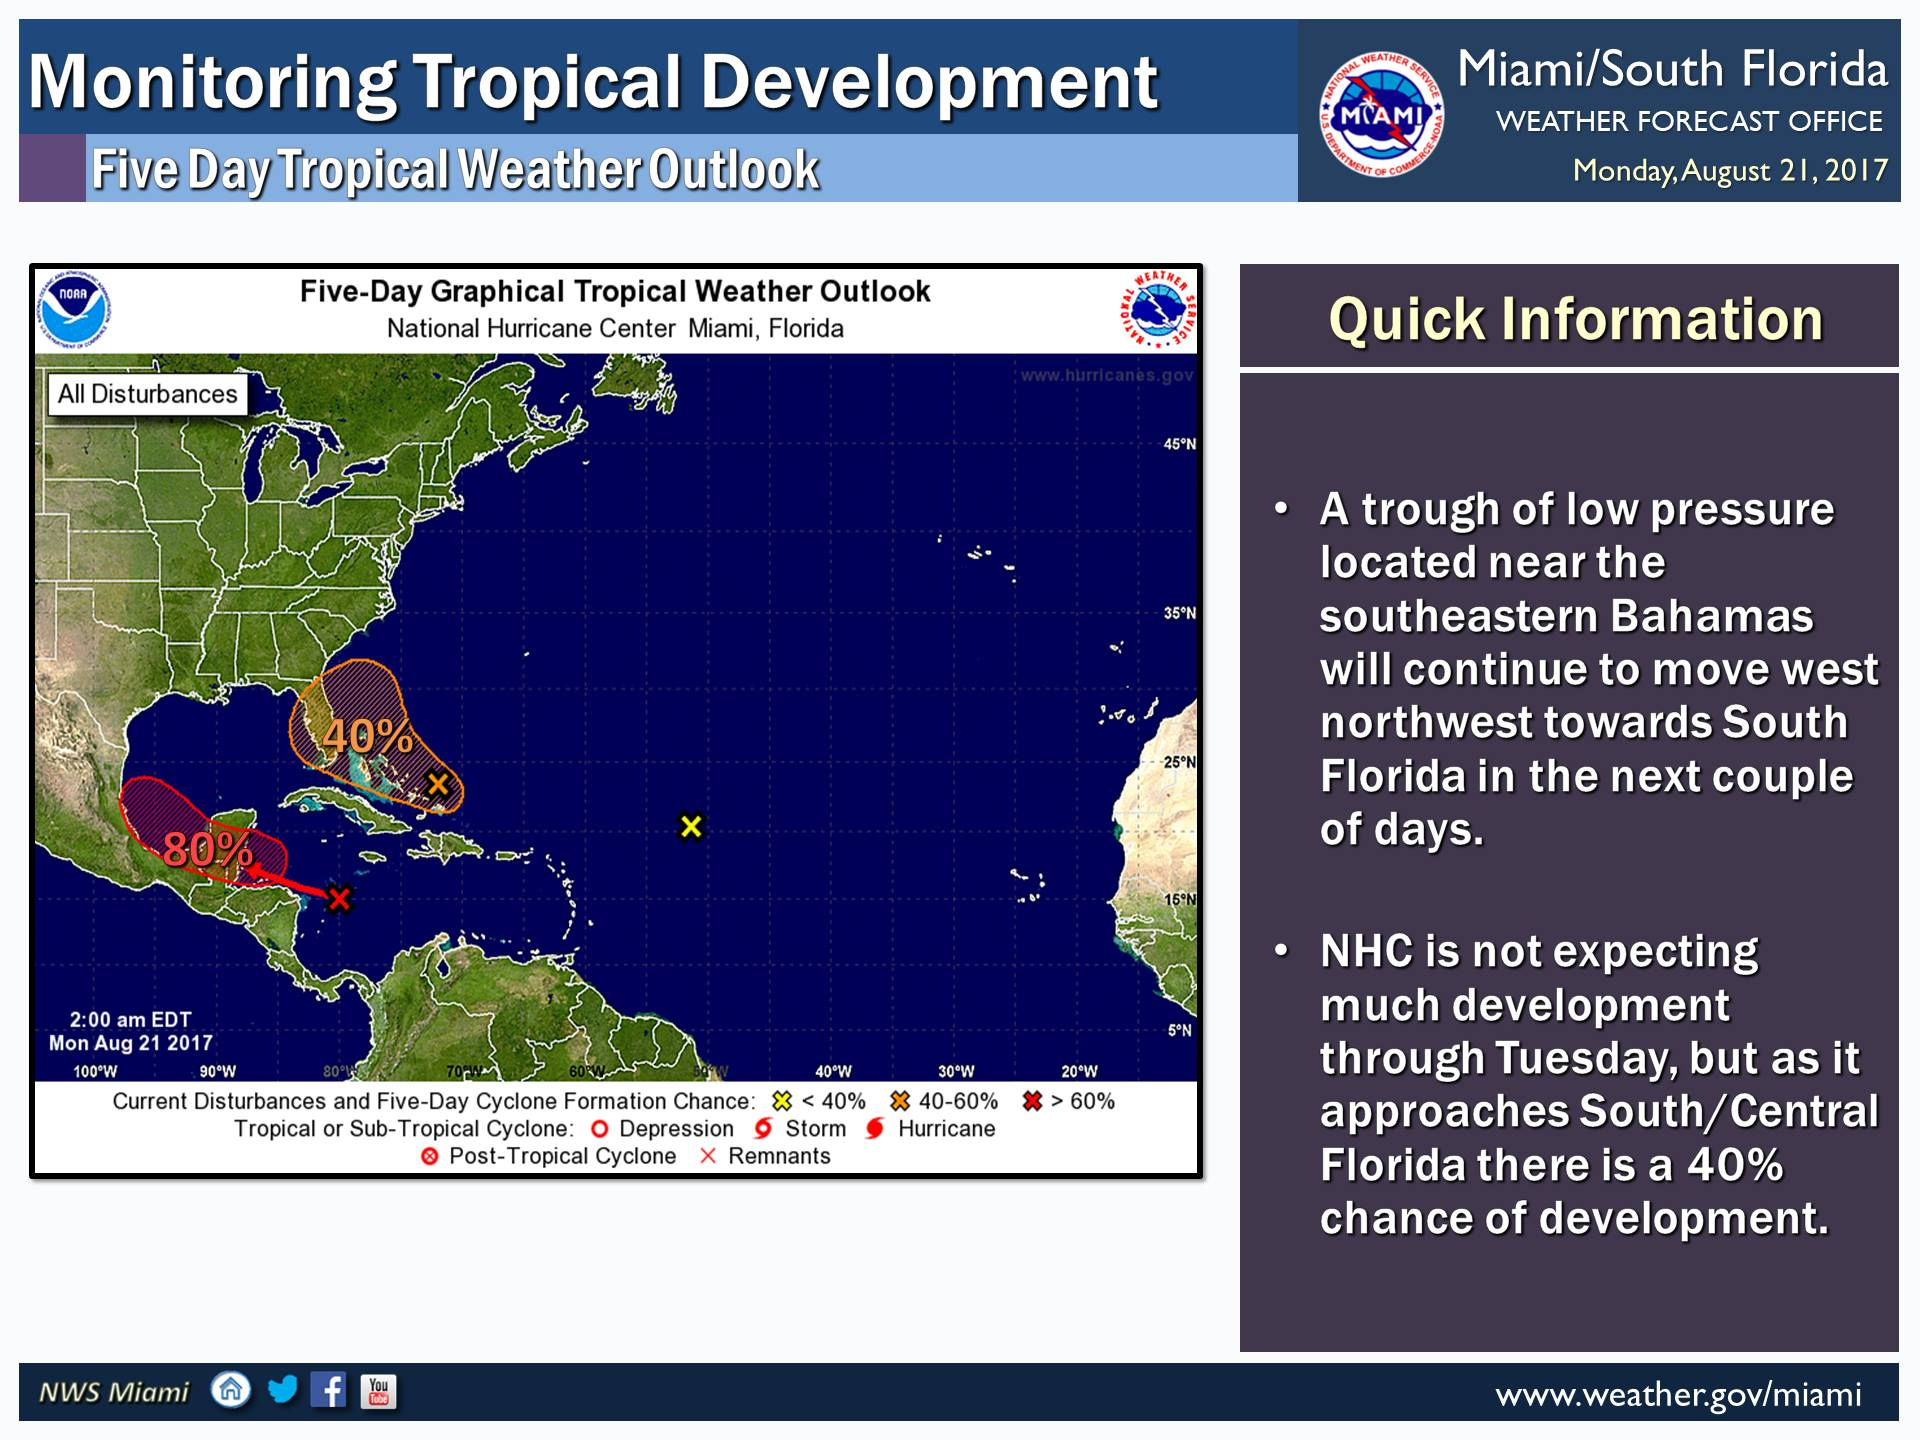 NHC sees 100 pct chance of cyclone over southwestern Gulf of Mexico